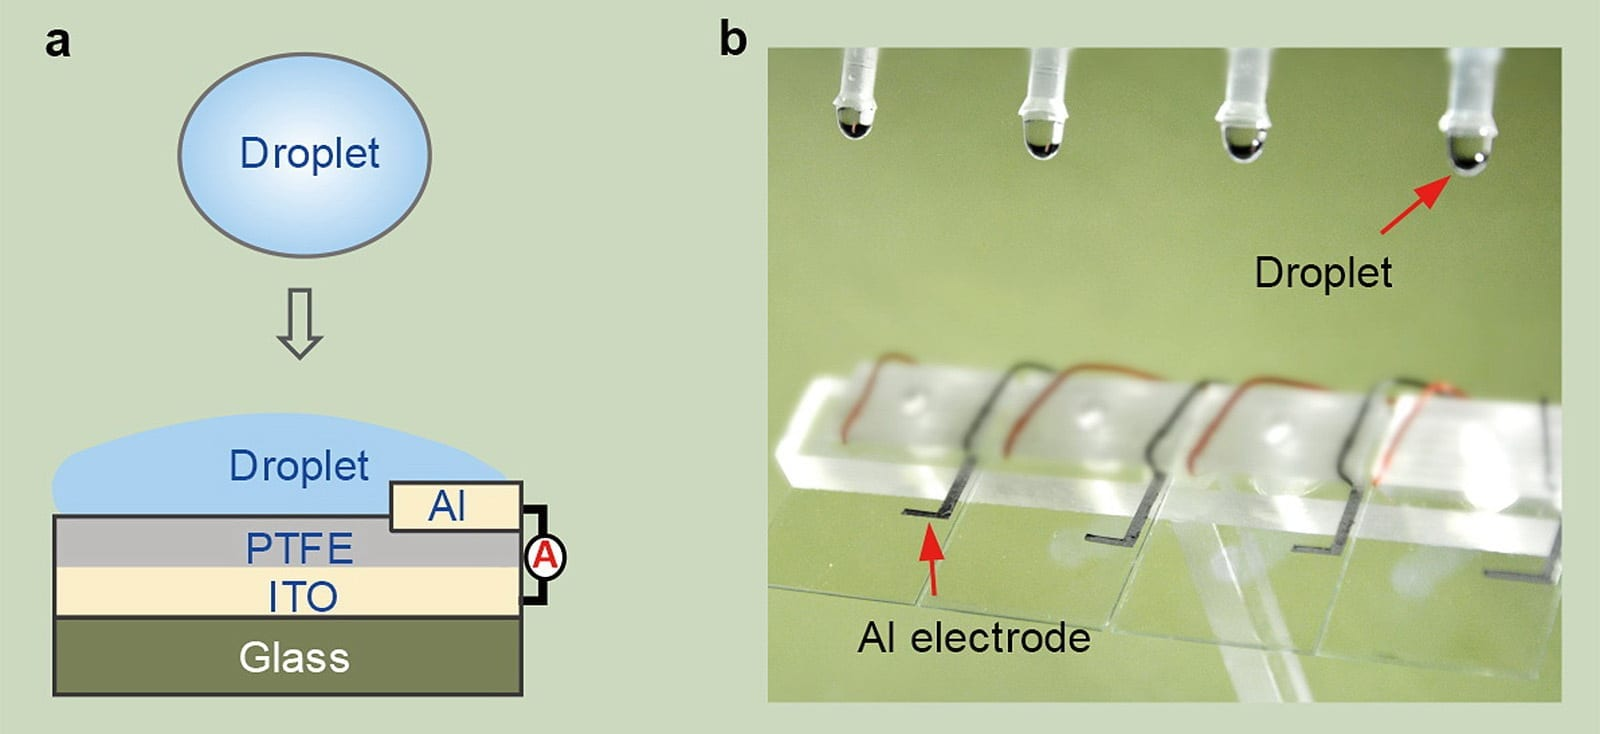 Fig a is the schematic diagram of DEG: an ITO glass slide is coated with a thin film of PTFE and an aluminium electrode is put on top of it. Drops of water act as the gate of the transistor and complete the circuit when they hit the surface of the glass. Fig b is the optical image showing four parallel DEG devices fabricated on the glass substrate.